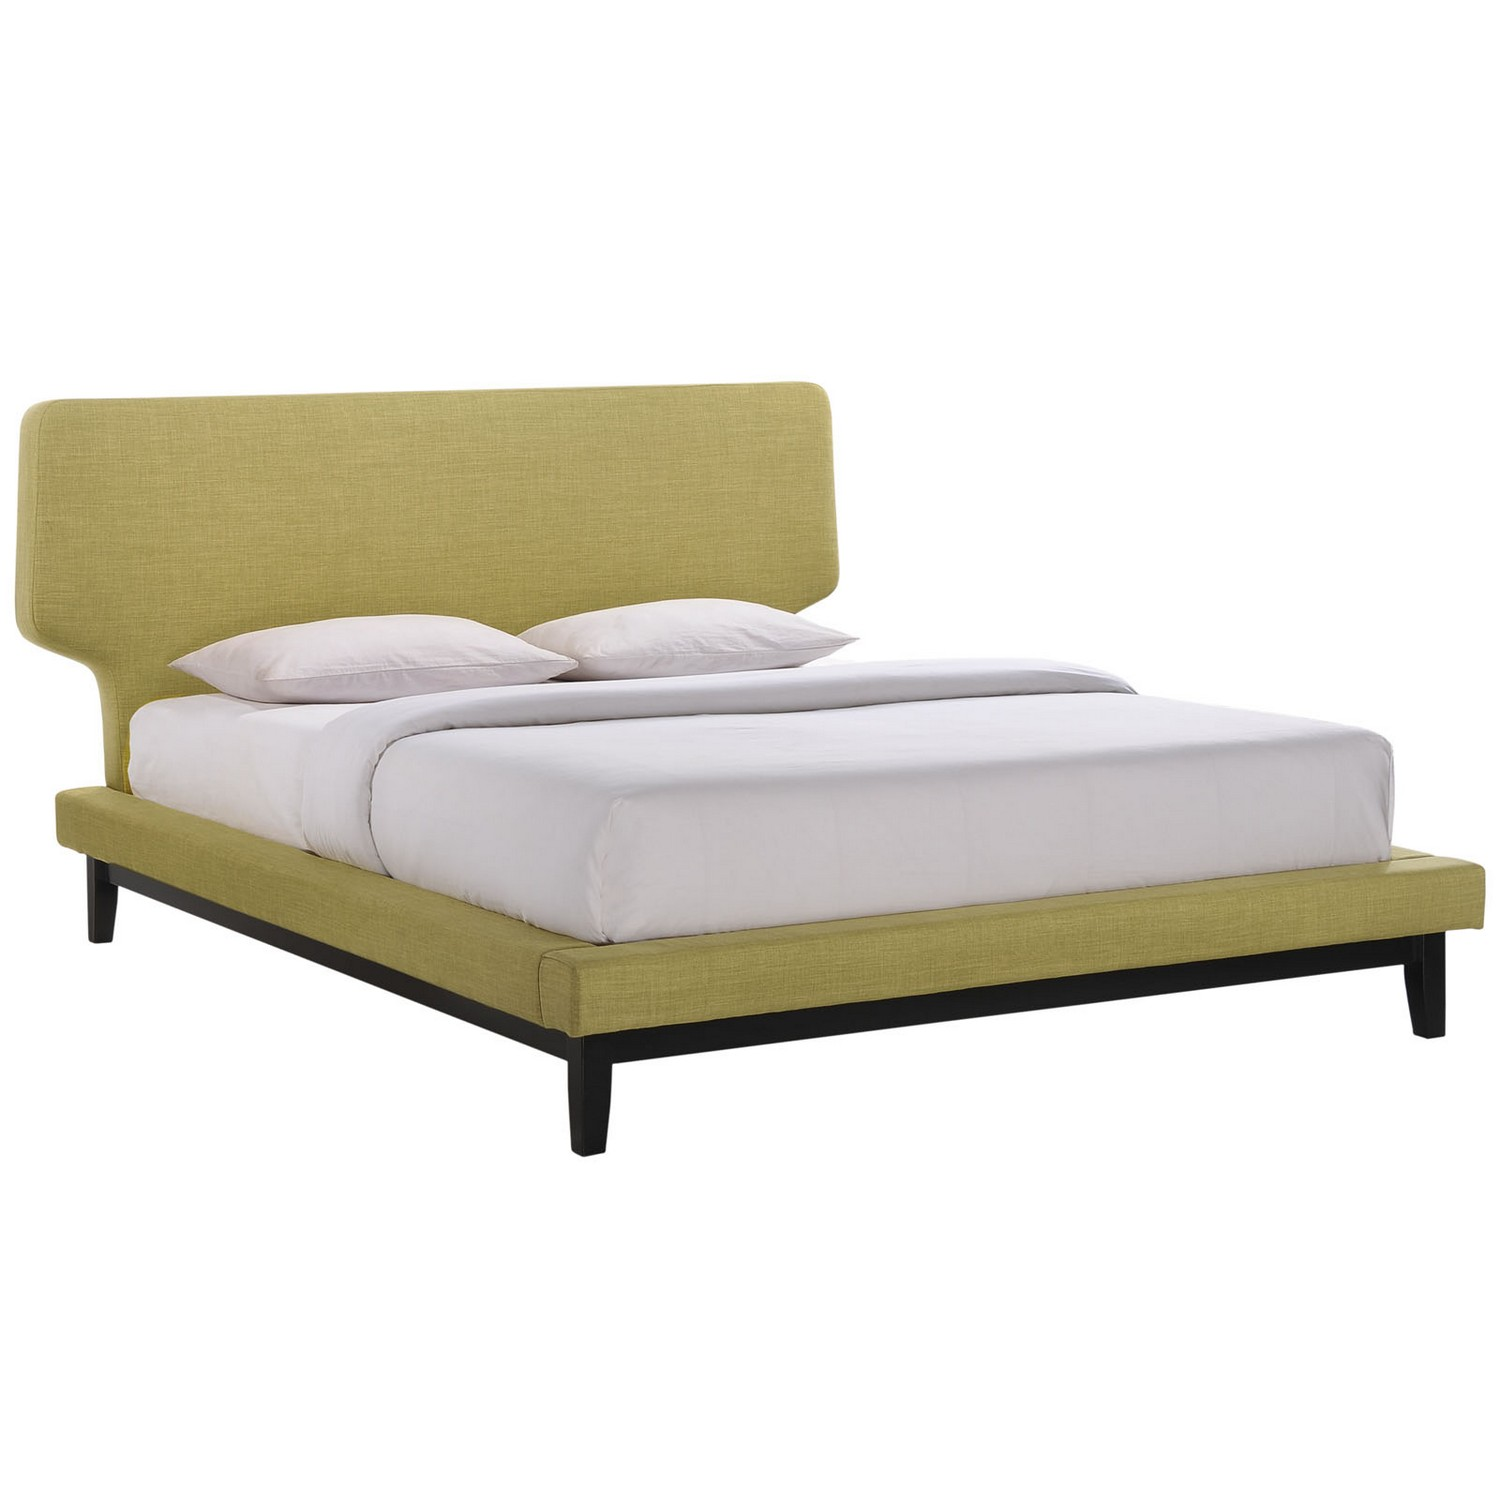 Modway Bethany Queen Bed - Black Green